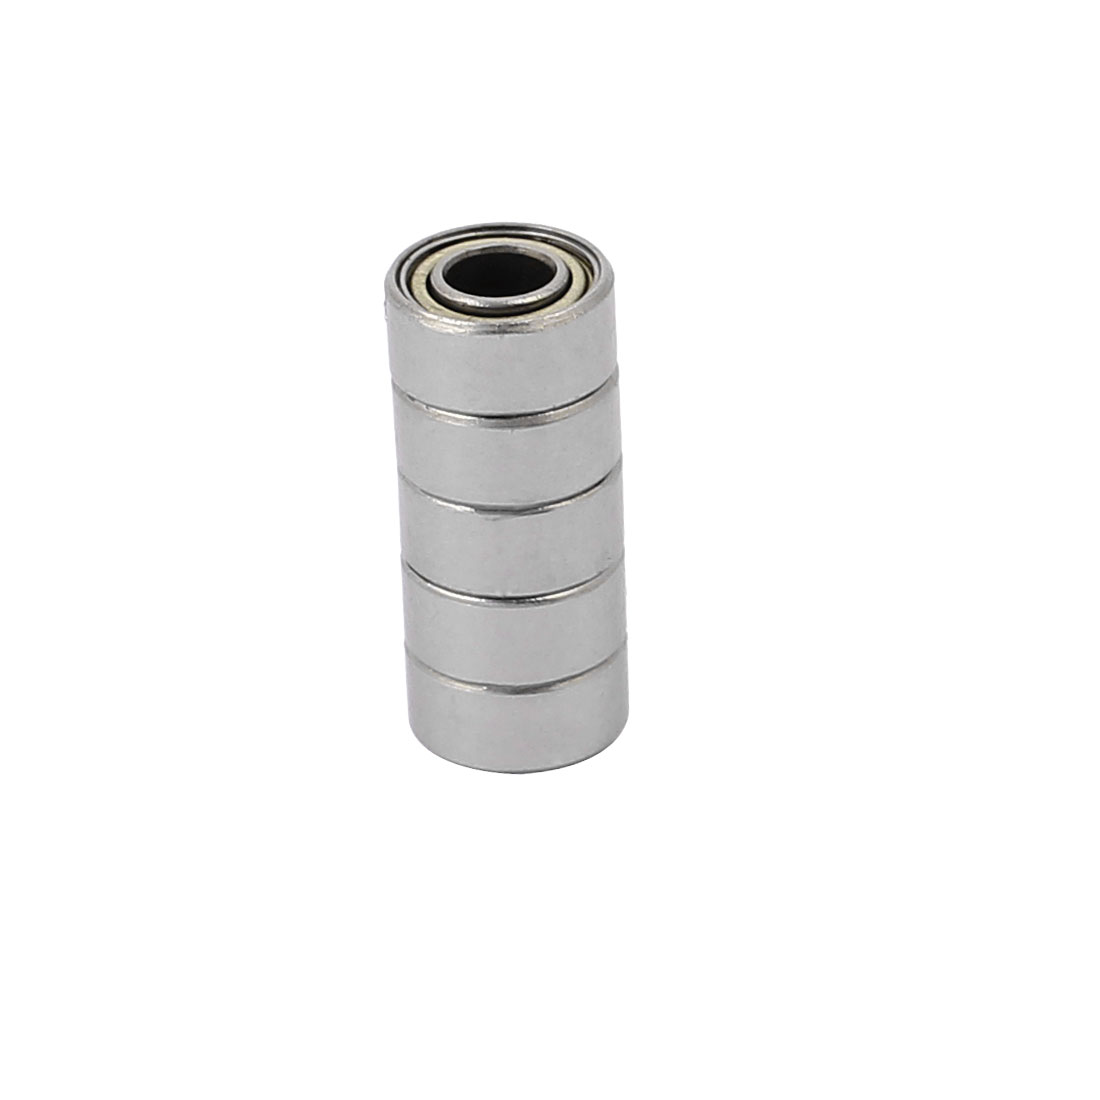 5pcs Metal Deep Groove Sealed Shielded Ball Bearing 5mmx11mmx5mm Silver Tone